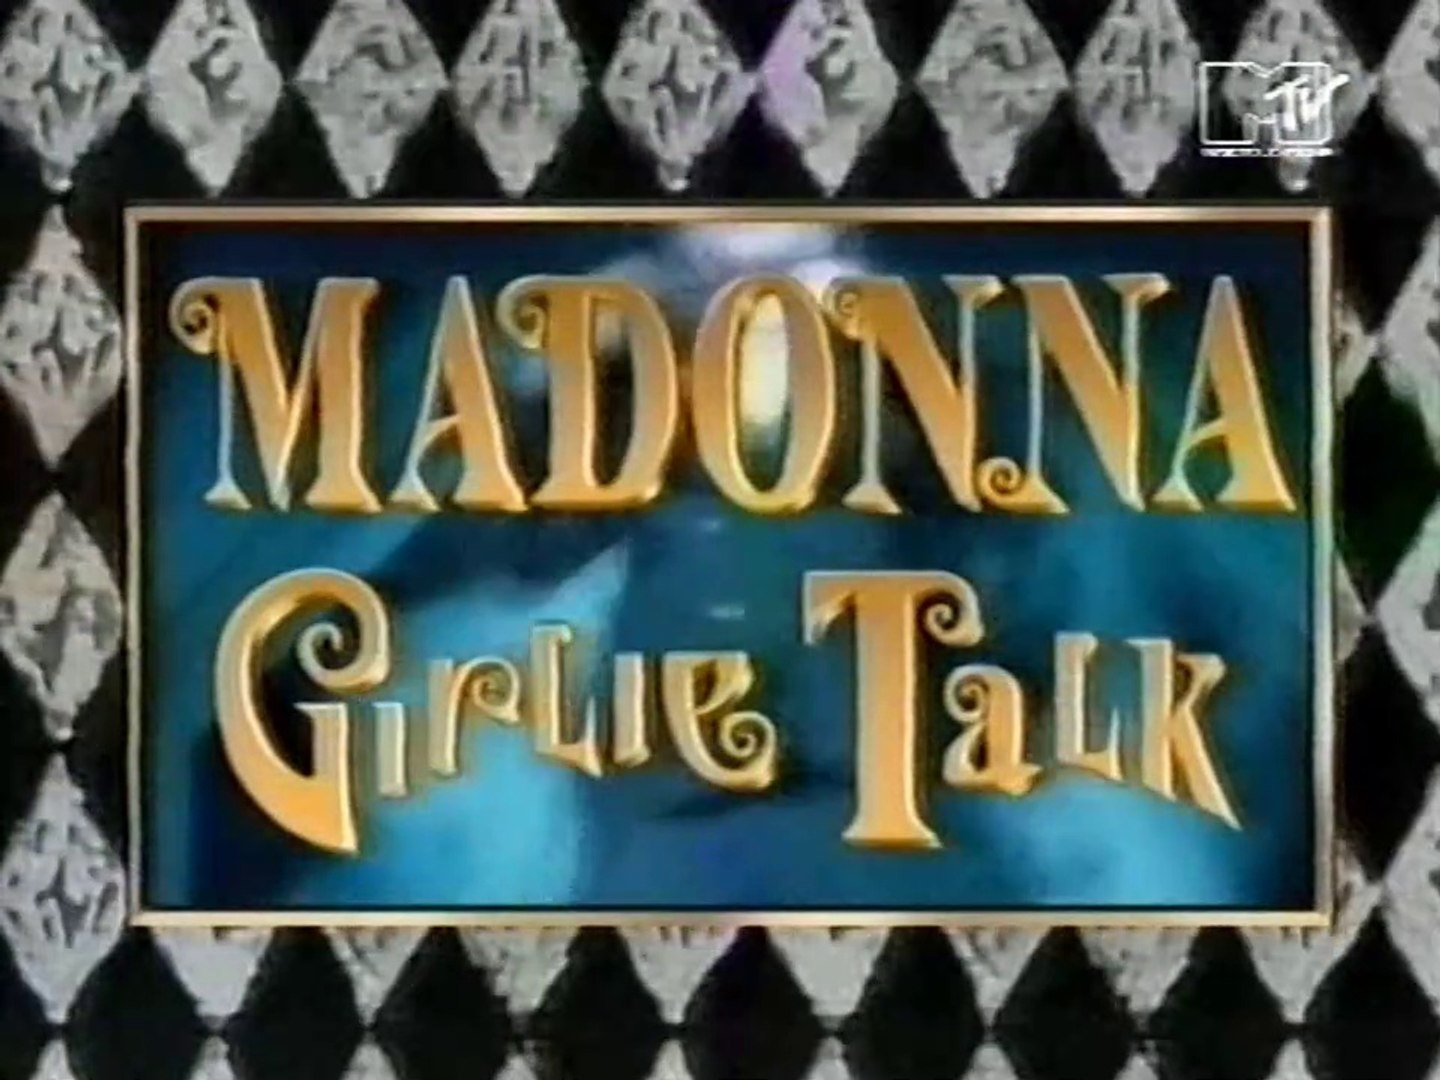 MADONNA/ MTV SPECIAL/ 1993/ GIRLIE TALK/ INTERVIEW/ THE GIRLIE SHOW PROMO/ THESHOW 2019